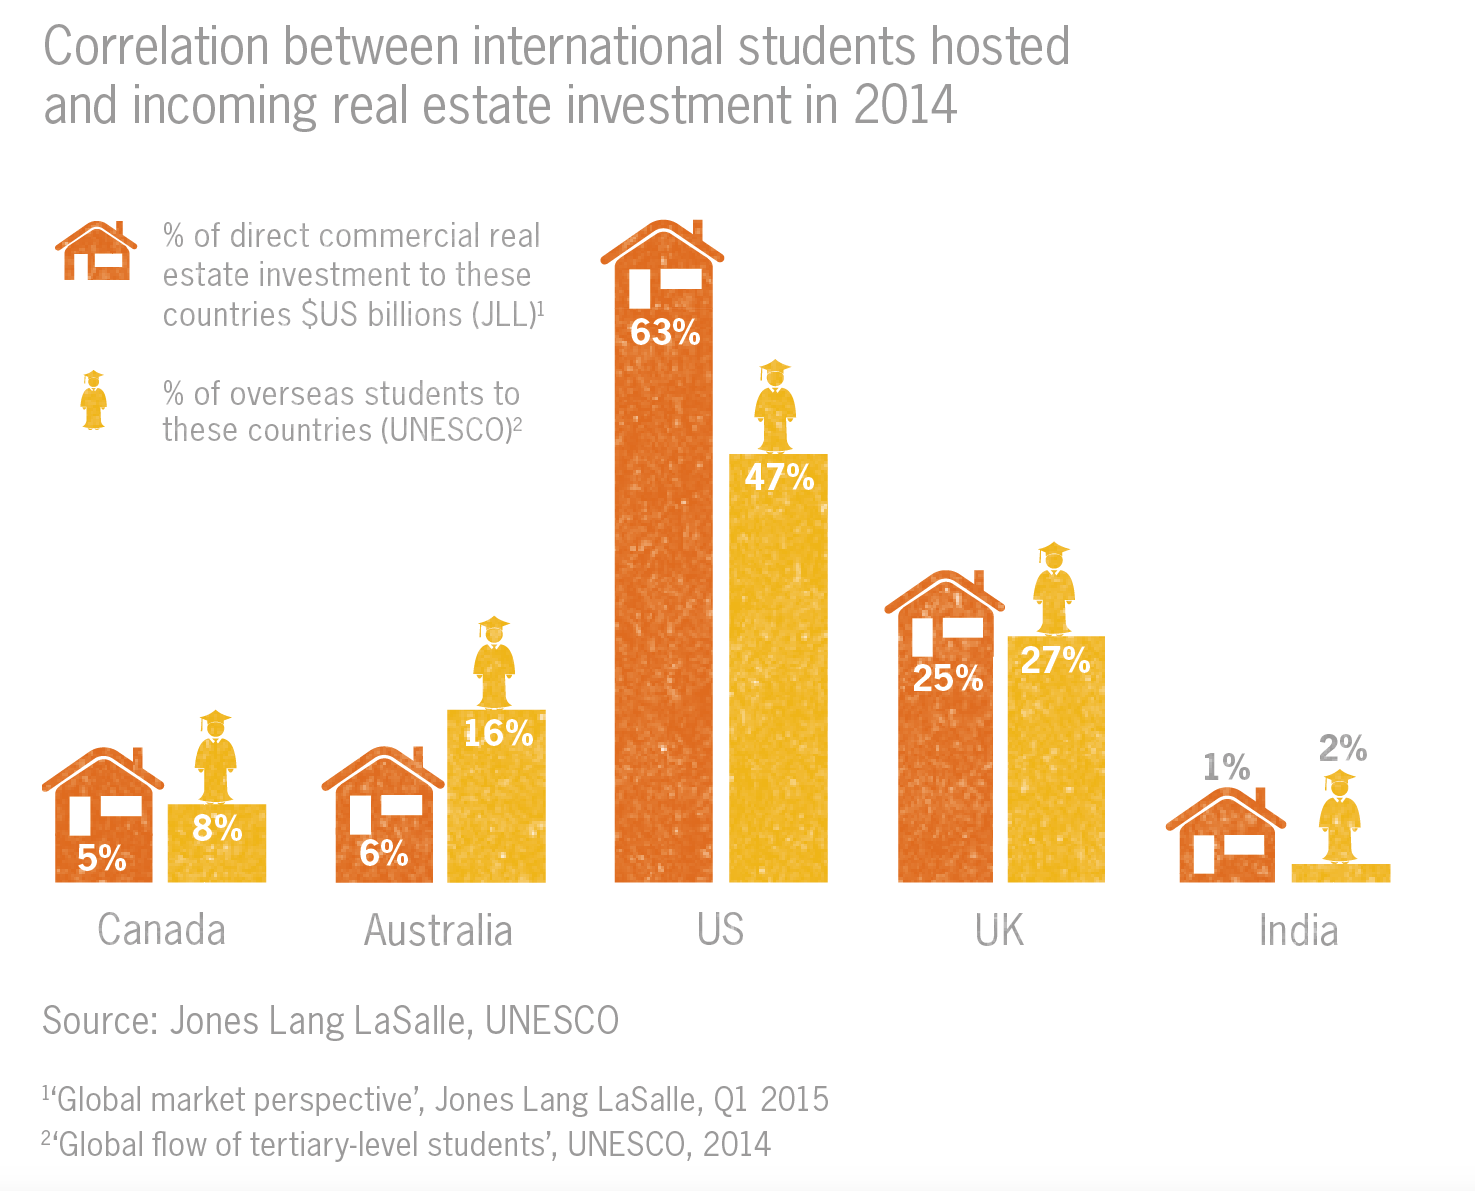 Correlation between international students hosted and incoming real estate investment 2014